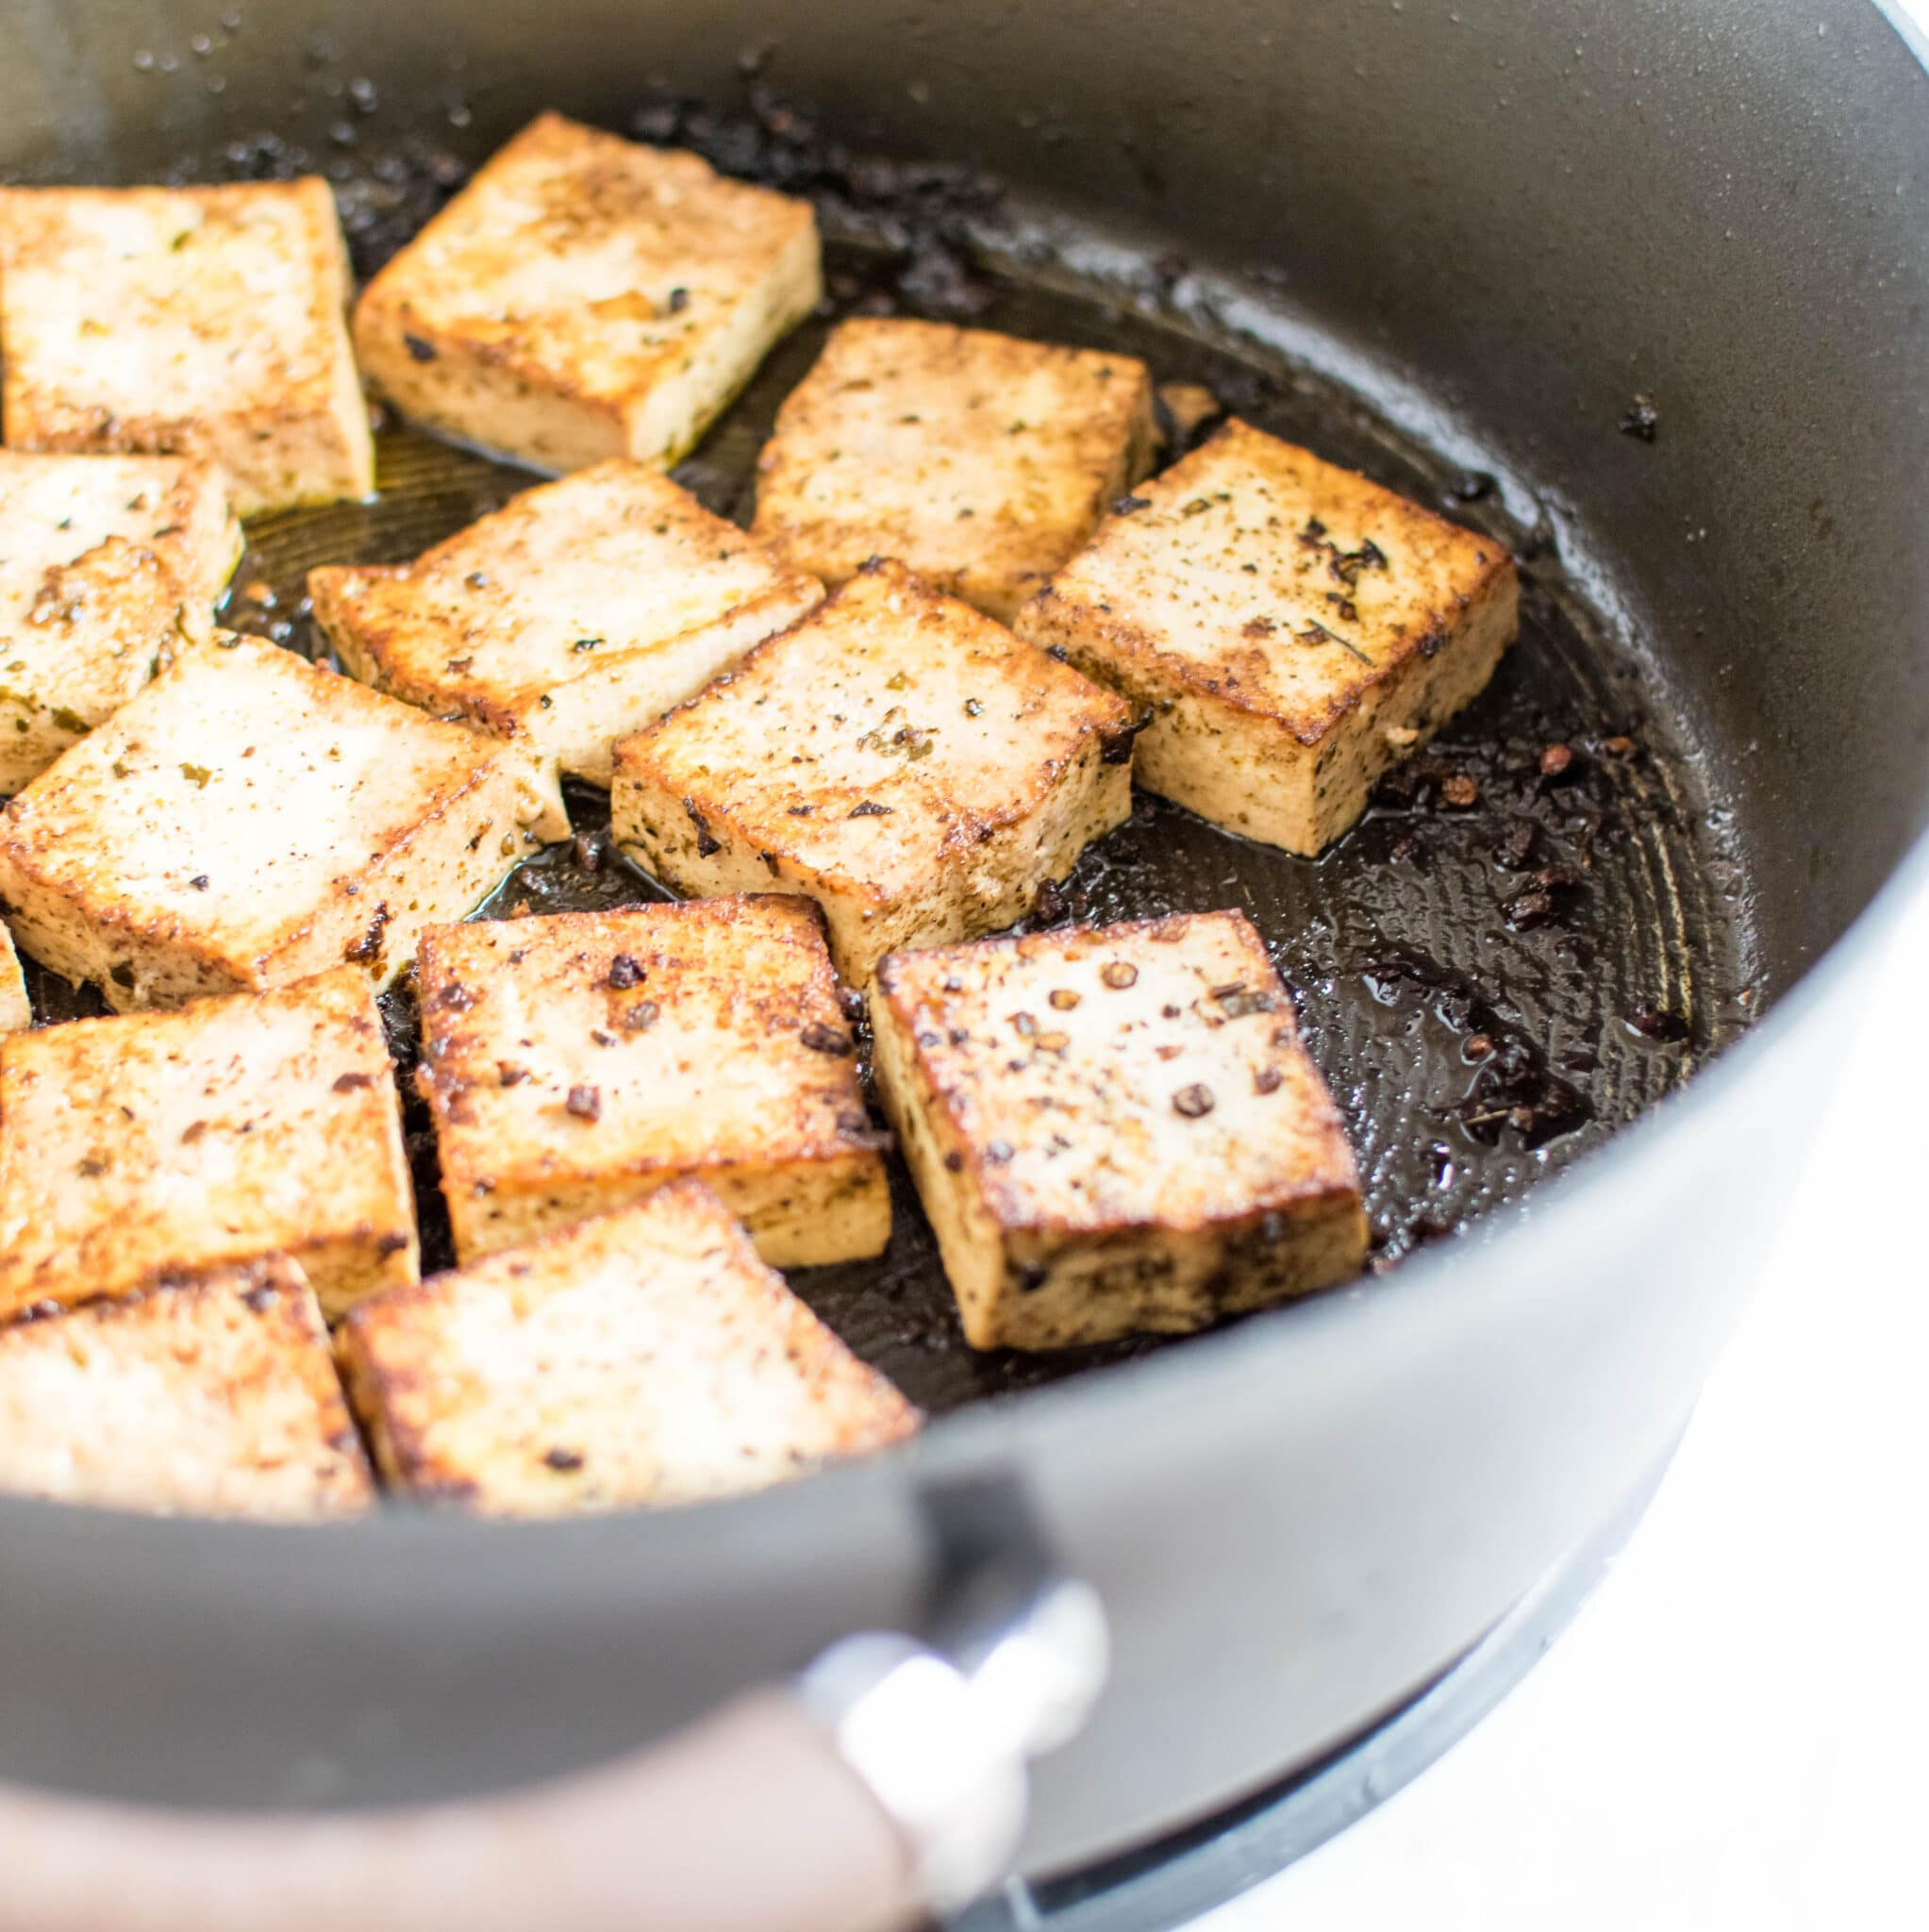 Tofu being cooked in herbs and red wine vinegar is shown in this image   kiipfit.com